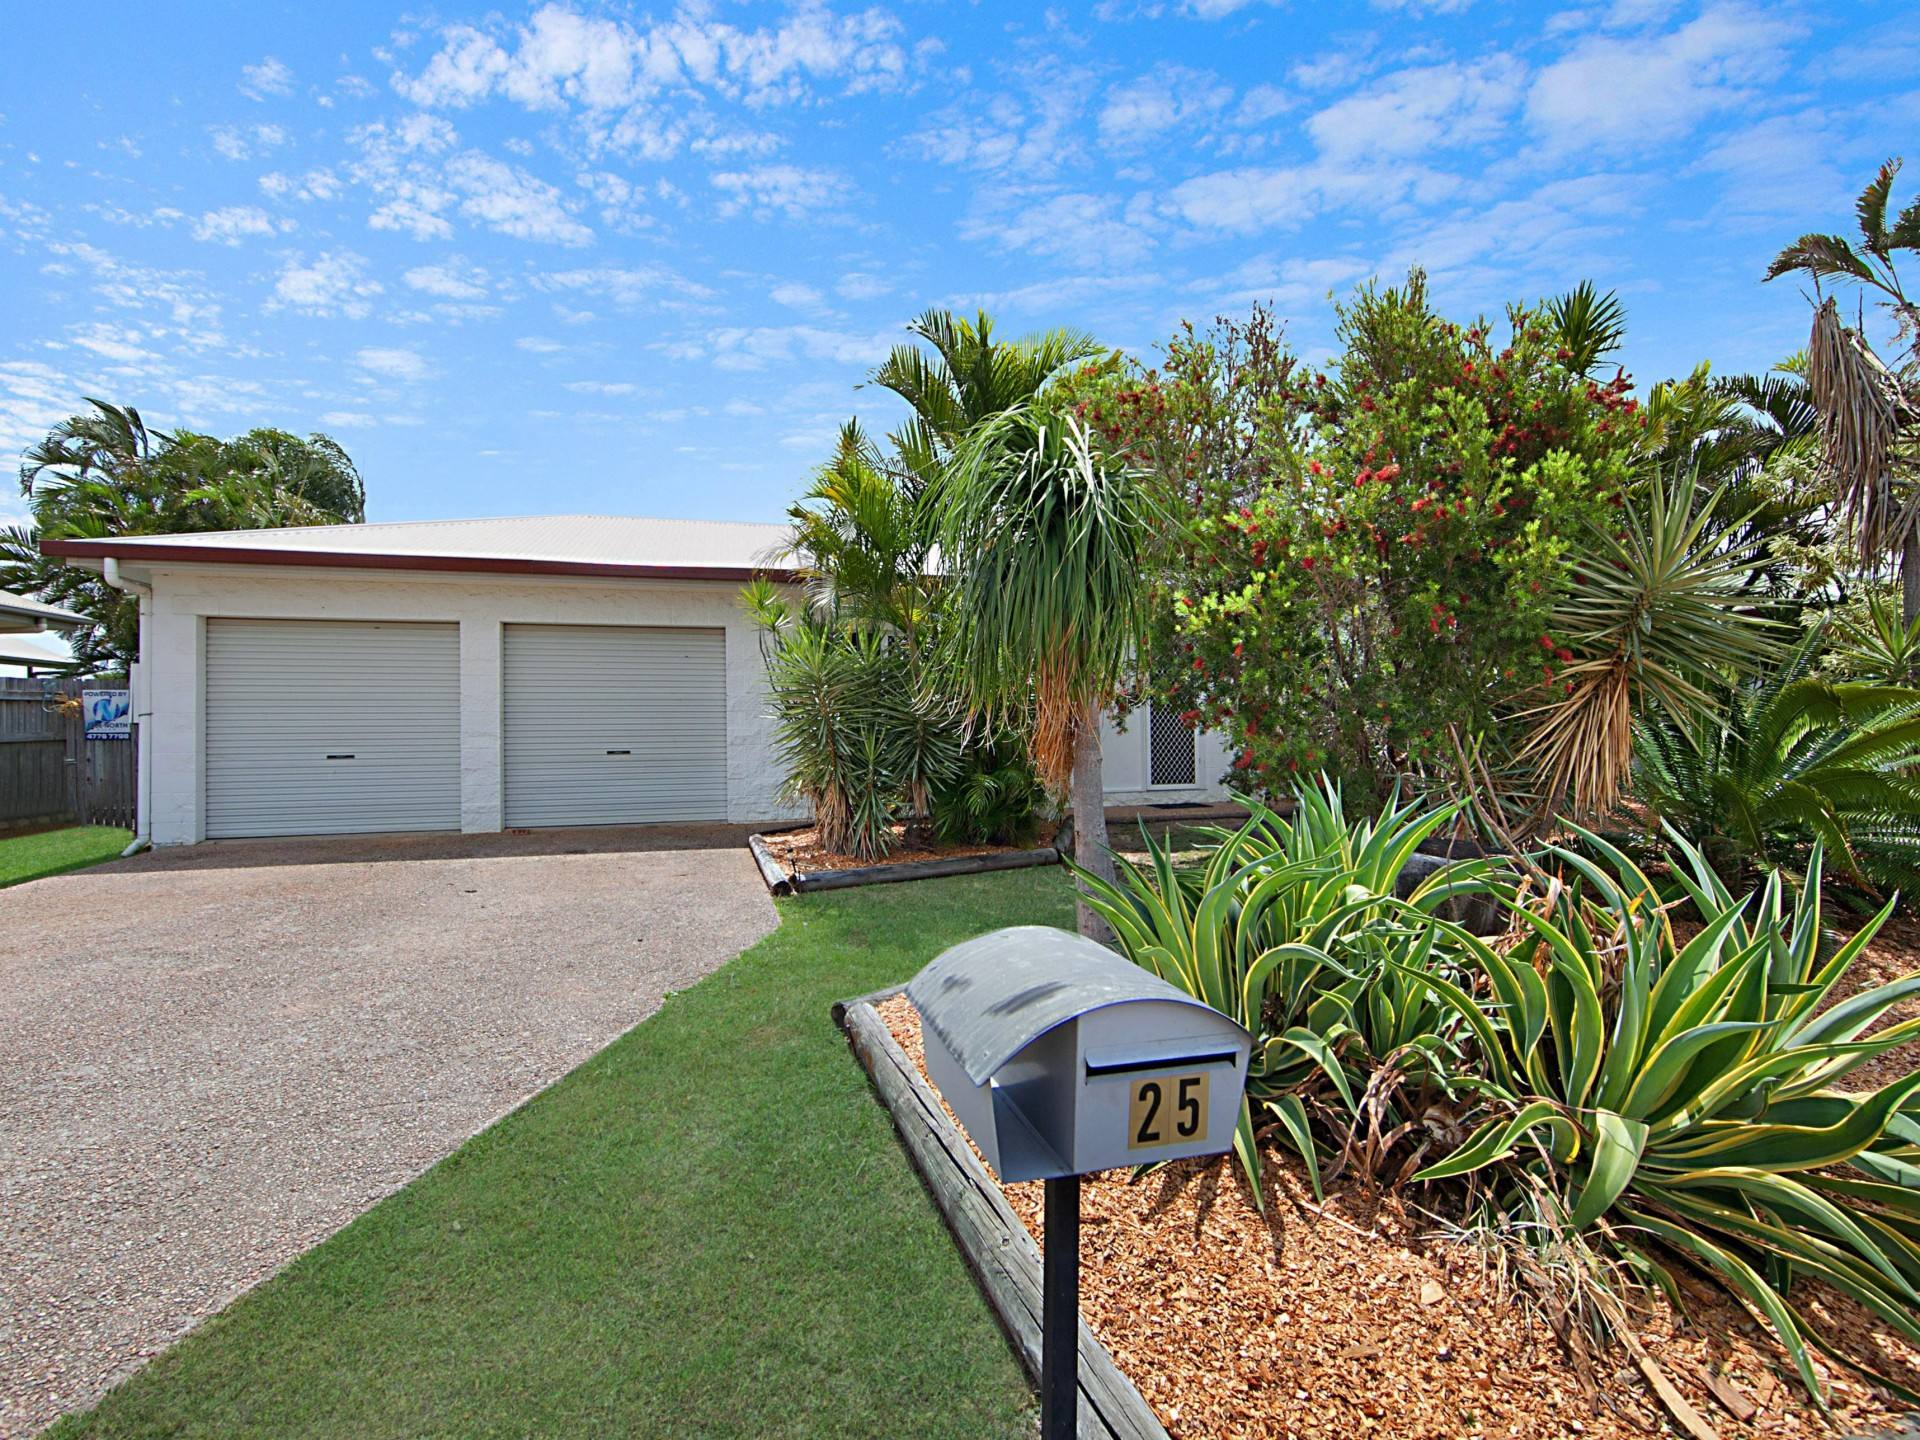 PRICE REDUCTION! SUPERB FAMILY LOCATION - MUST TO INSPECT